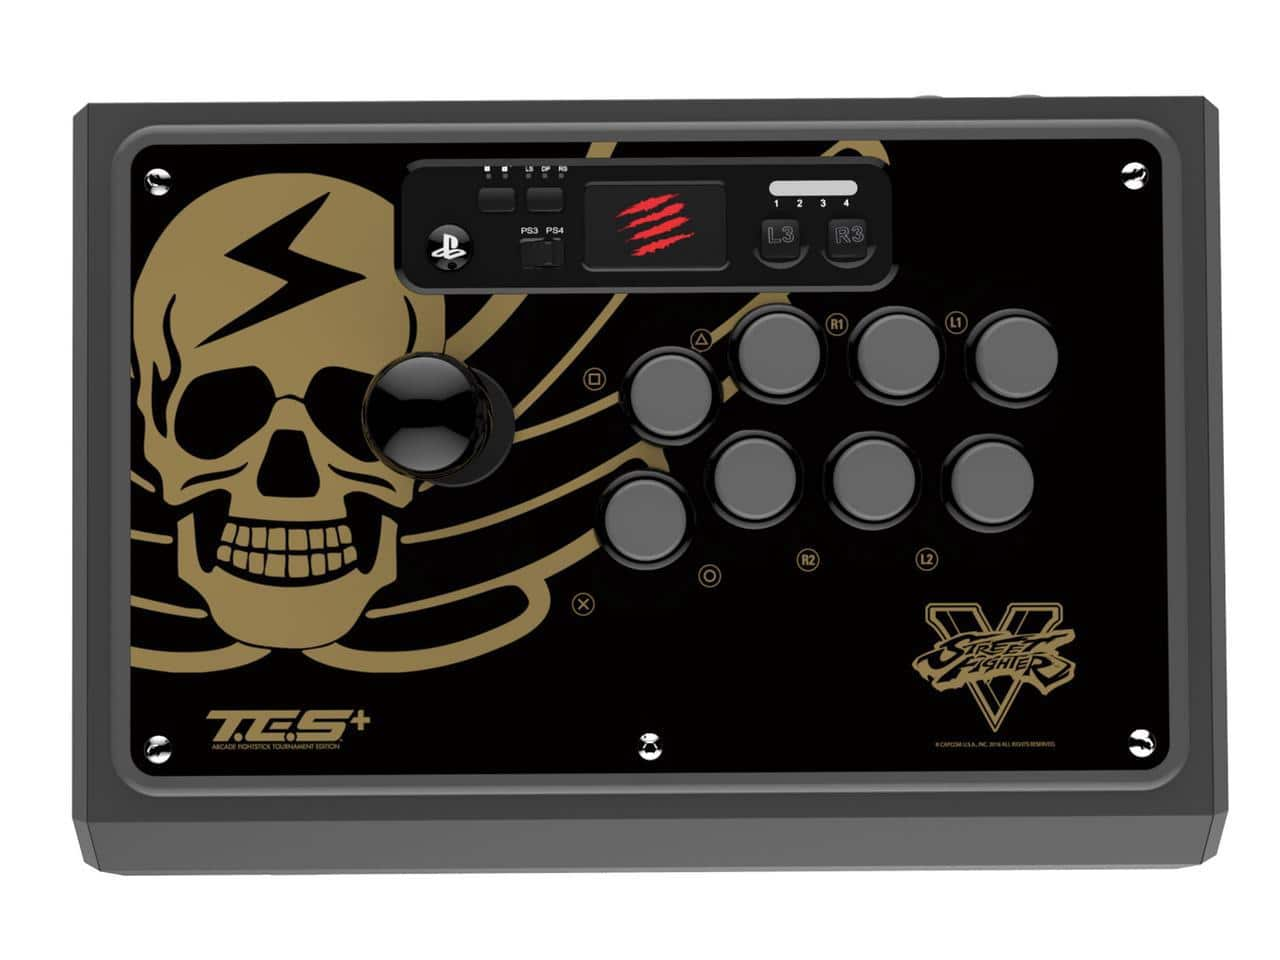 Mad Catz SFV Arcade FightStick Tournament Edition S+ for PlayStation 3  PlayStation 4 for $149.99